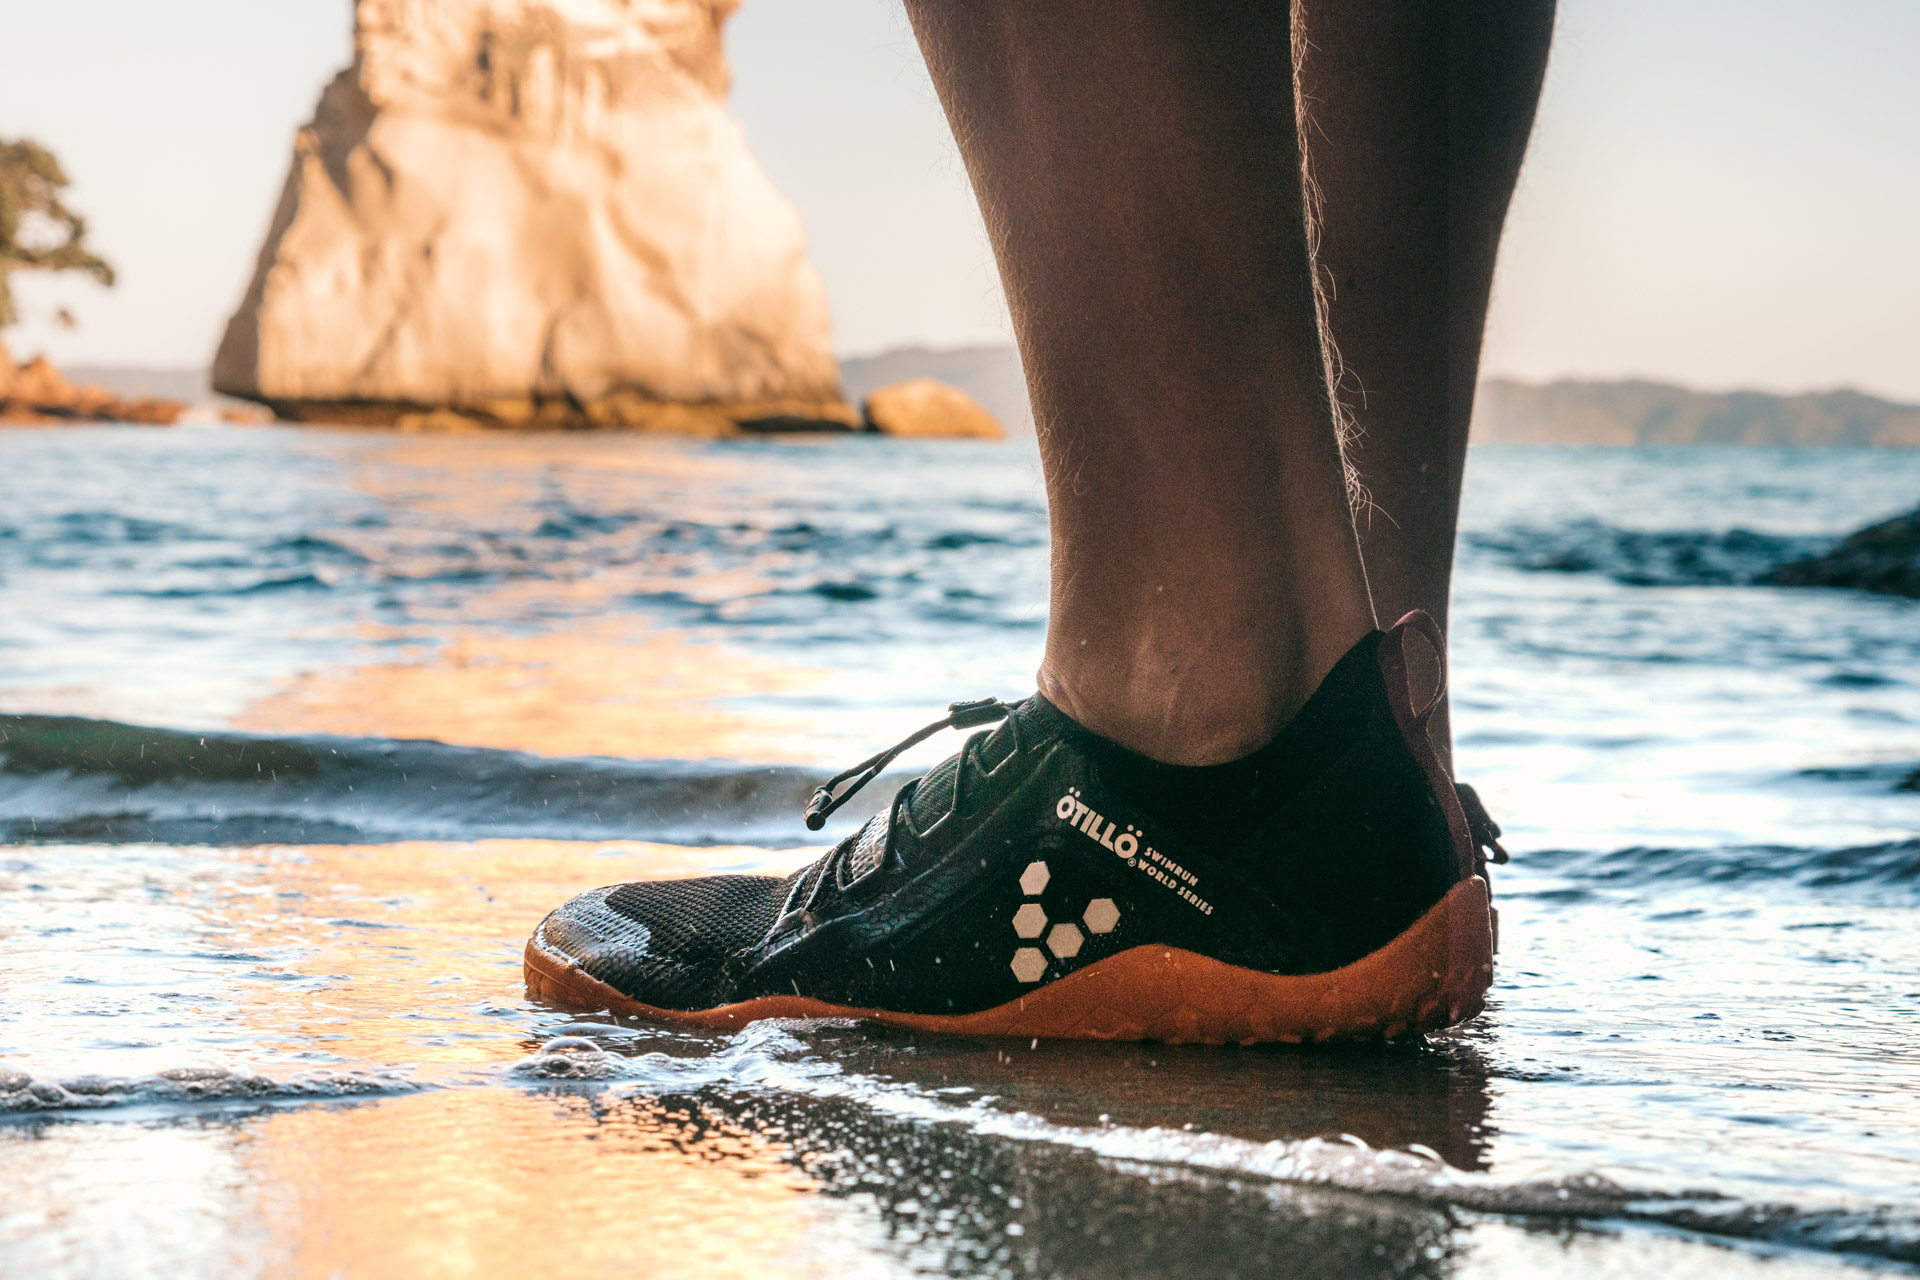 Vivobarefoot Shoes: Thoughts on Taking the Barefoot Experience Around the World